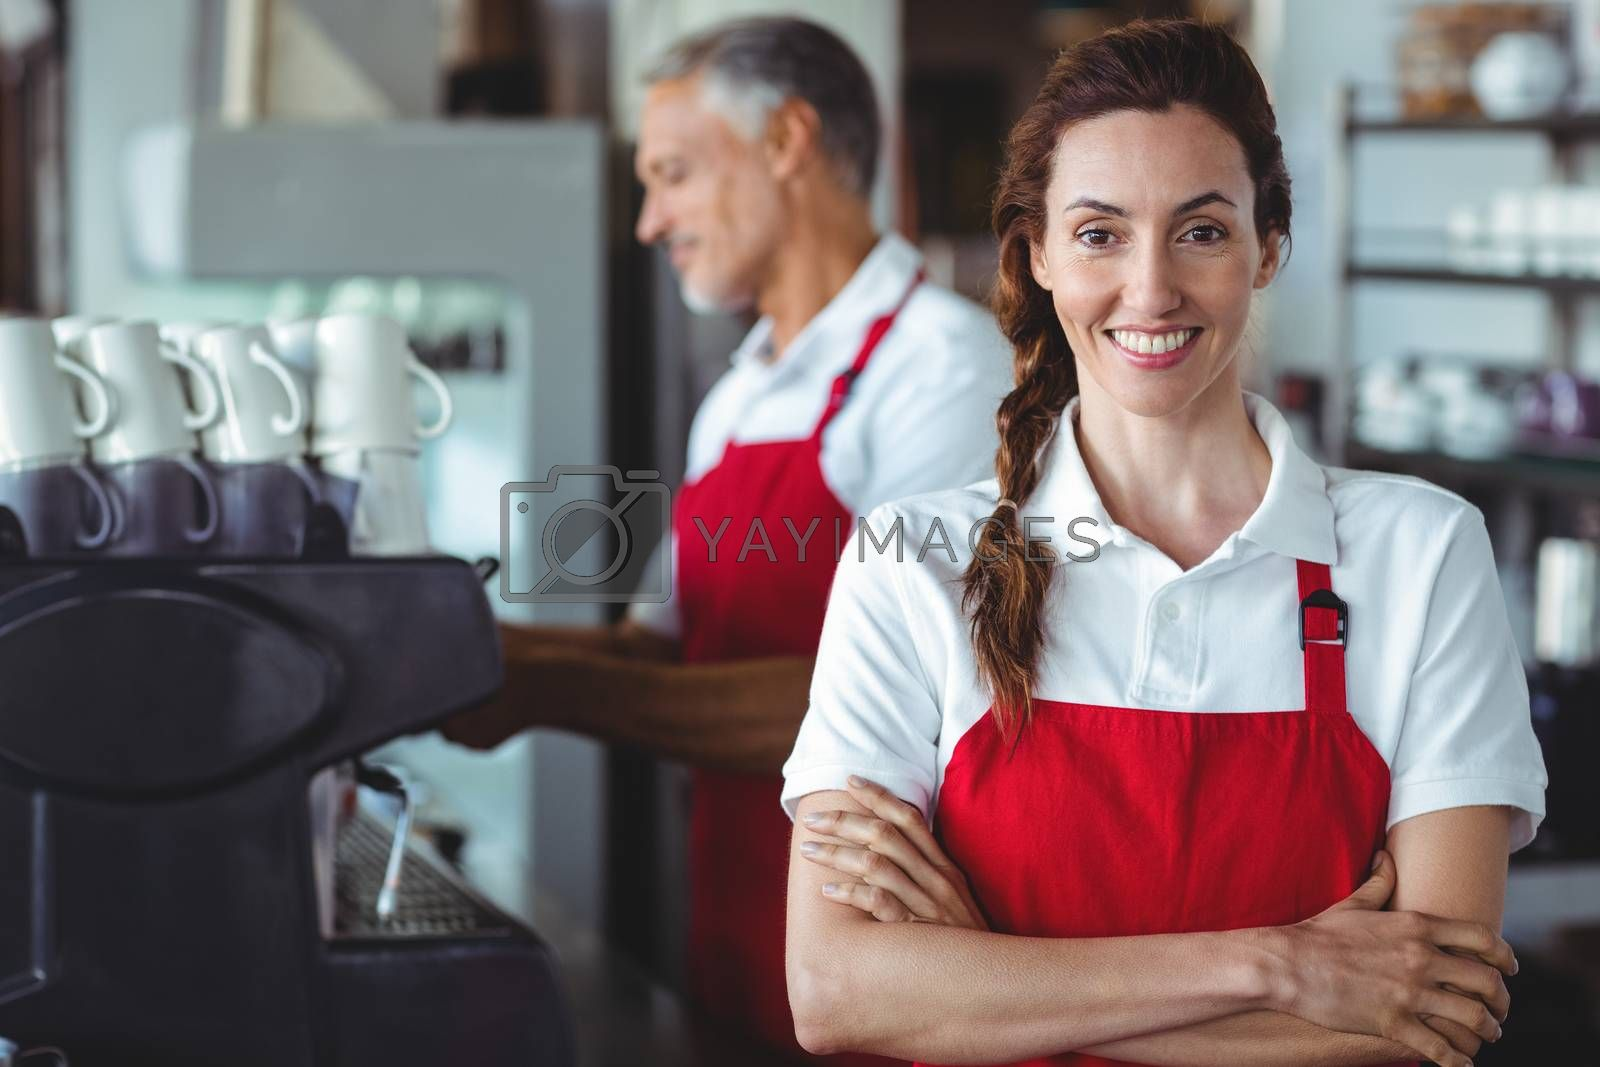 Royalty free image of Pretty barista smiling at camera with colleague behind by Wavebreakmedia